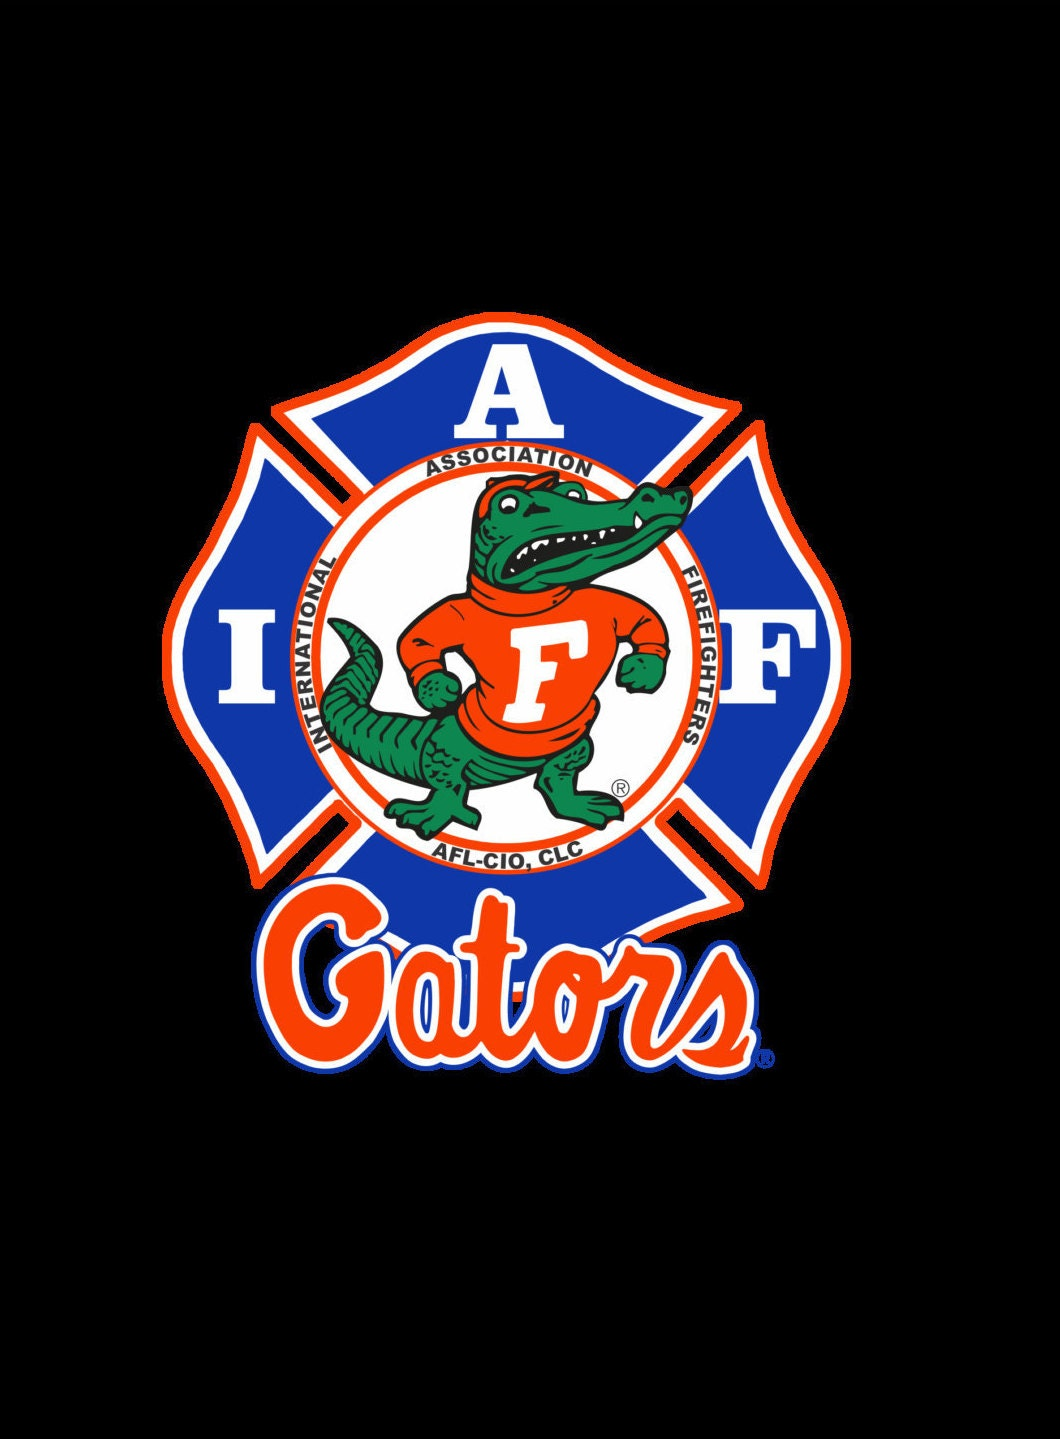 IAFF Florida Gators Car Decal for Union Firefighters Free